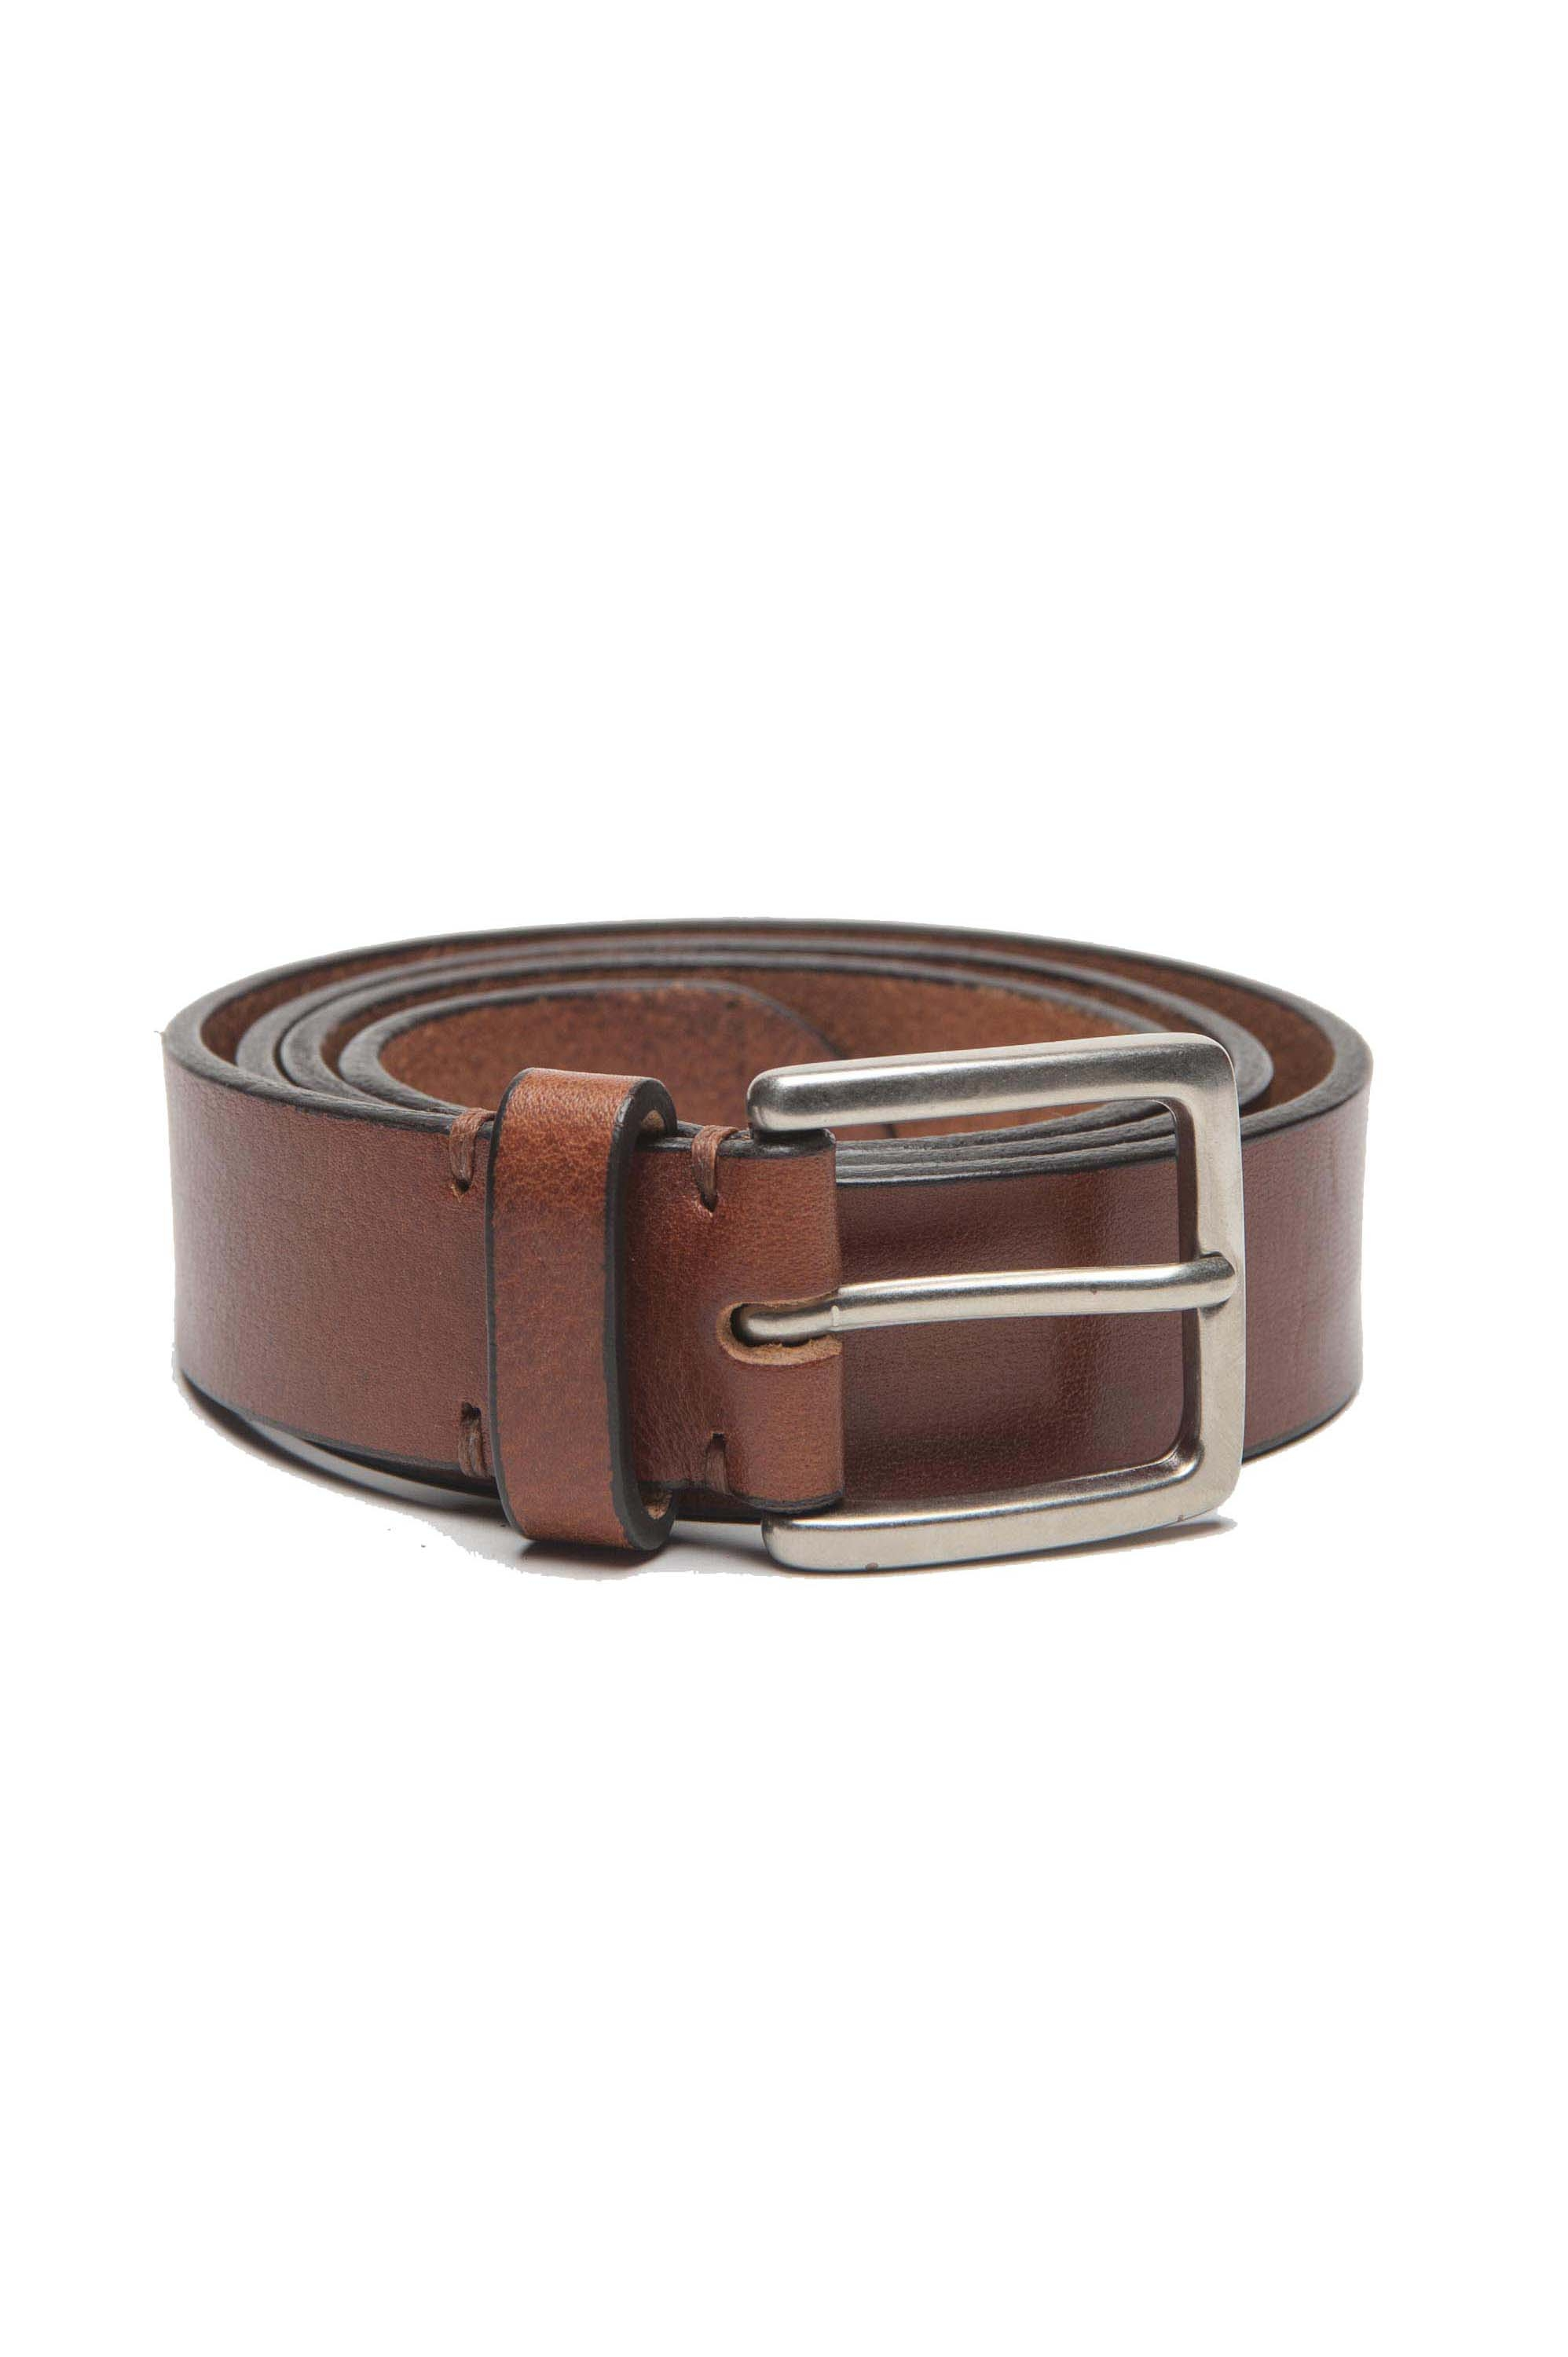 SBU 01249 Classic leather belt 01